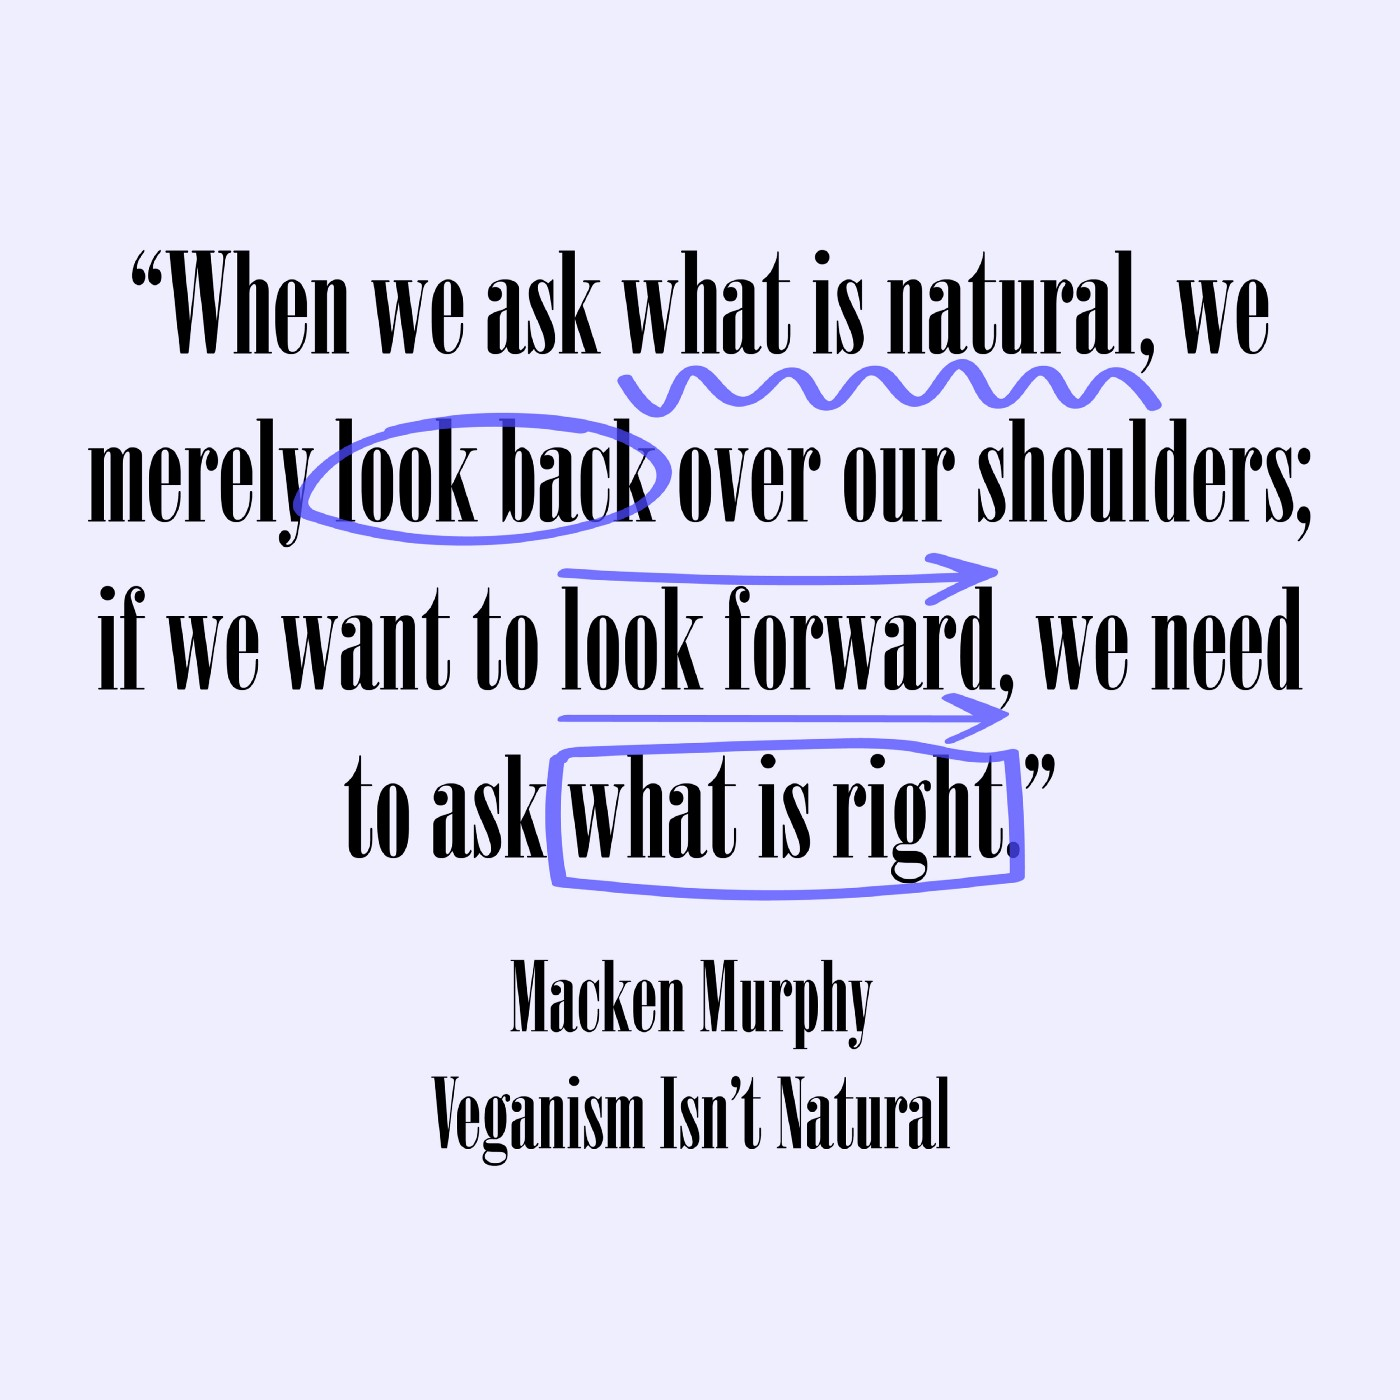 When we ask what is natural, we merely look back over our shoulders; if we want to look forward, we need to ask what is right